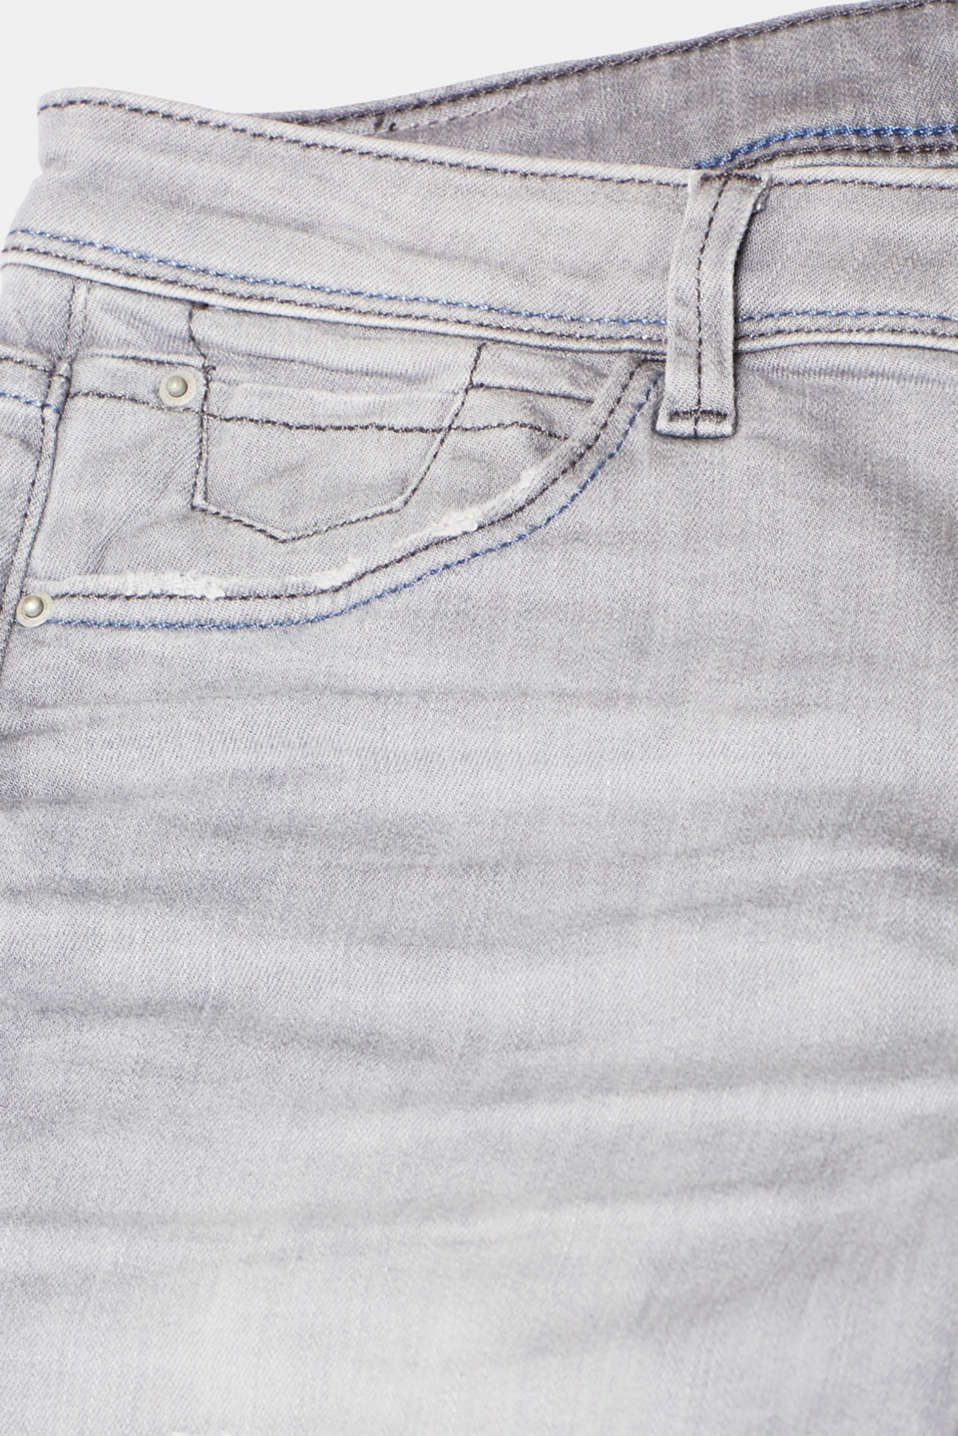 Pants denim, GREY LIGHT WASH, detail image number 4